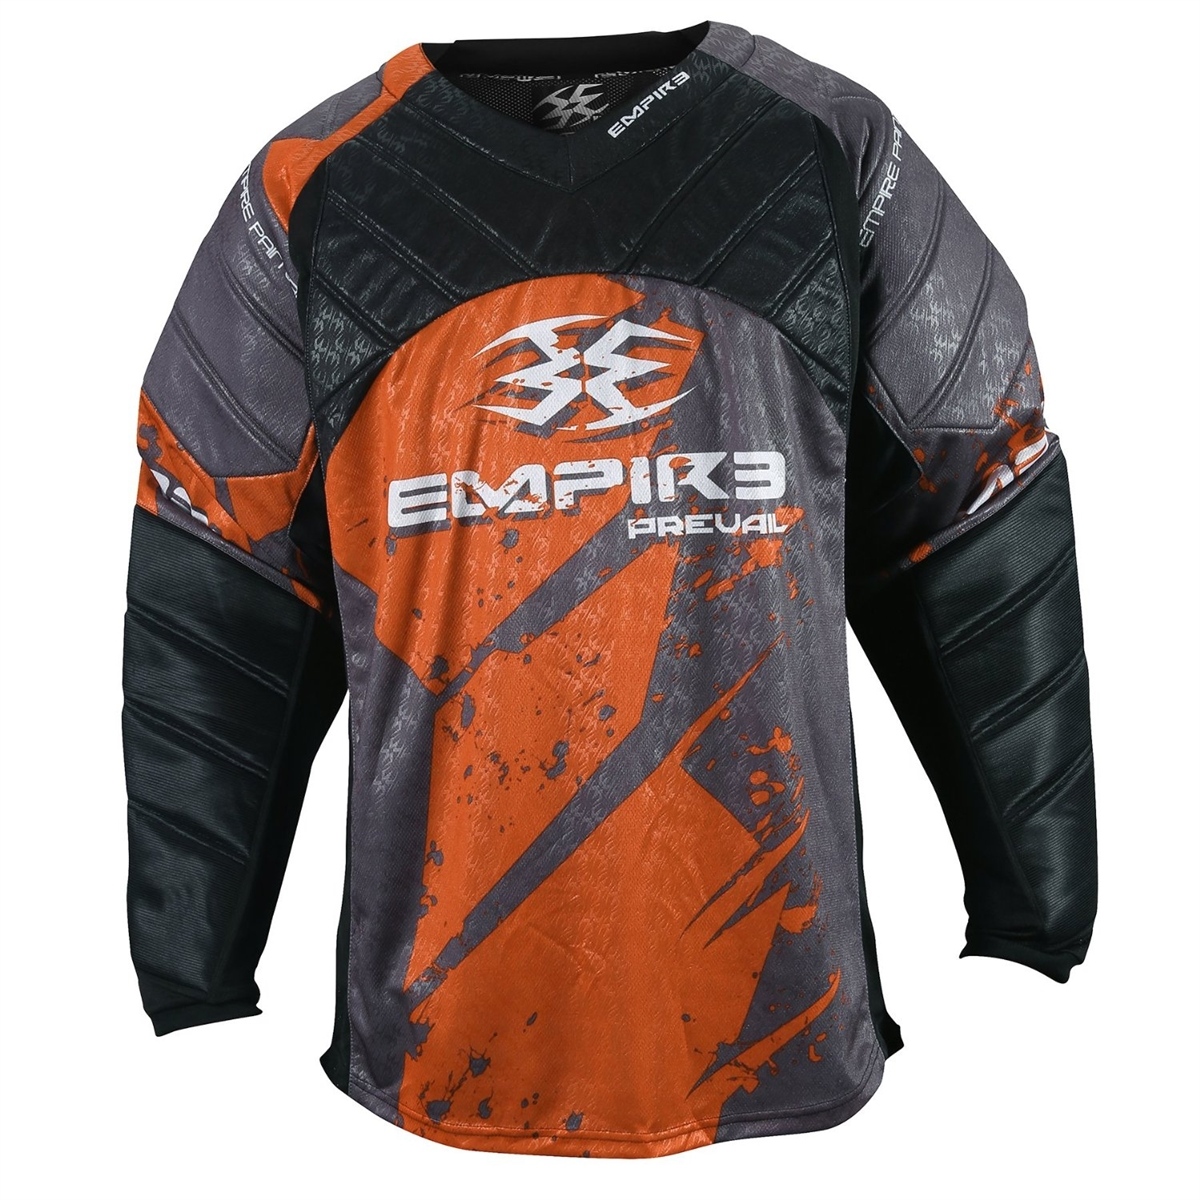 Empire Paintball Prevail F5 Jersey - Orange - Large